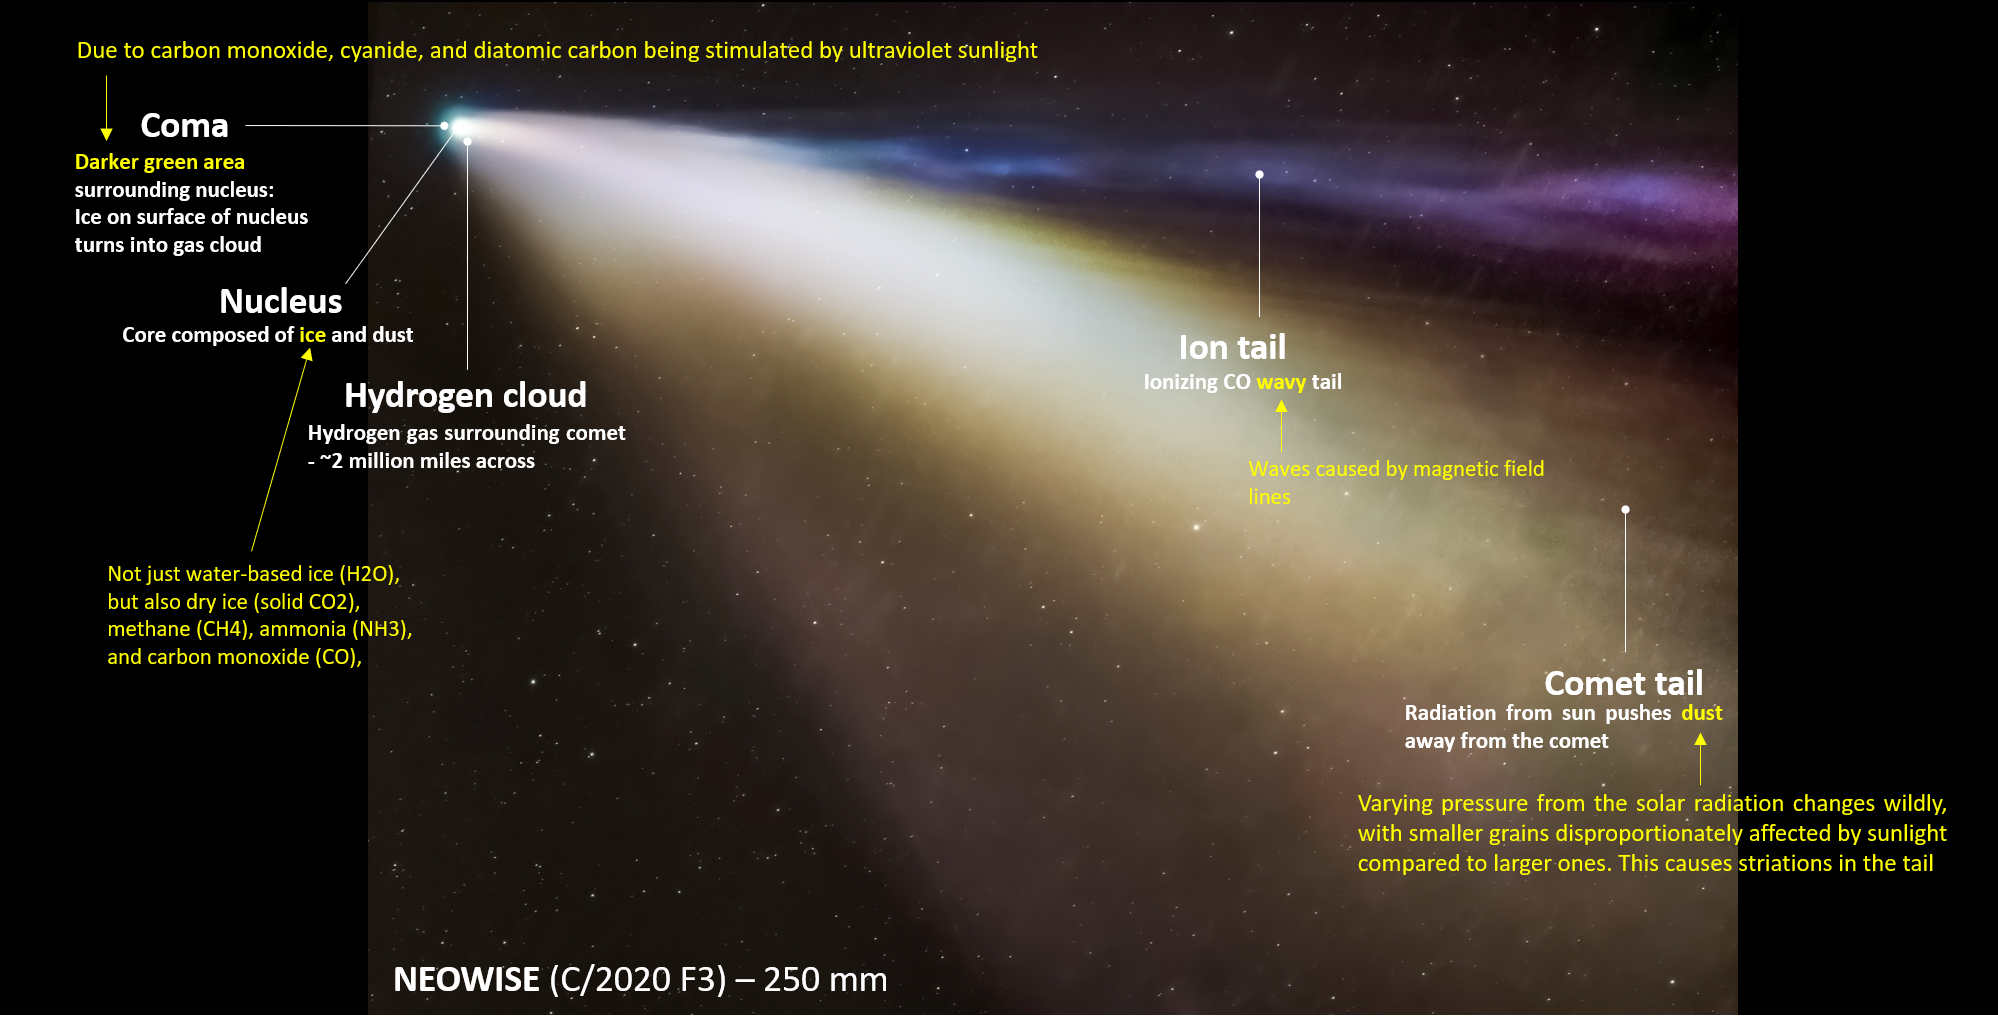 annotated figure, sky, stars, milky way, comet